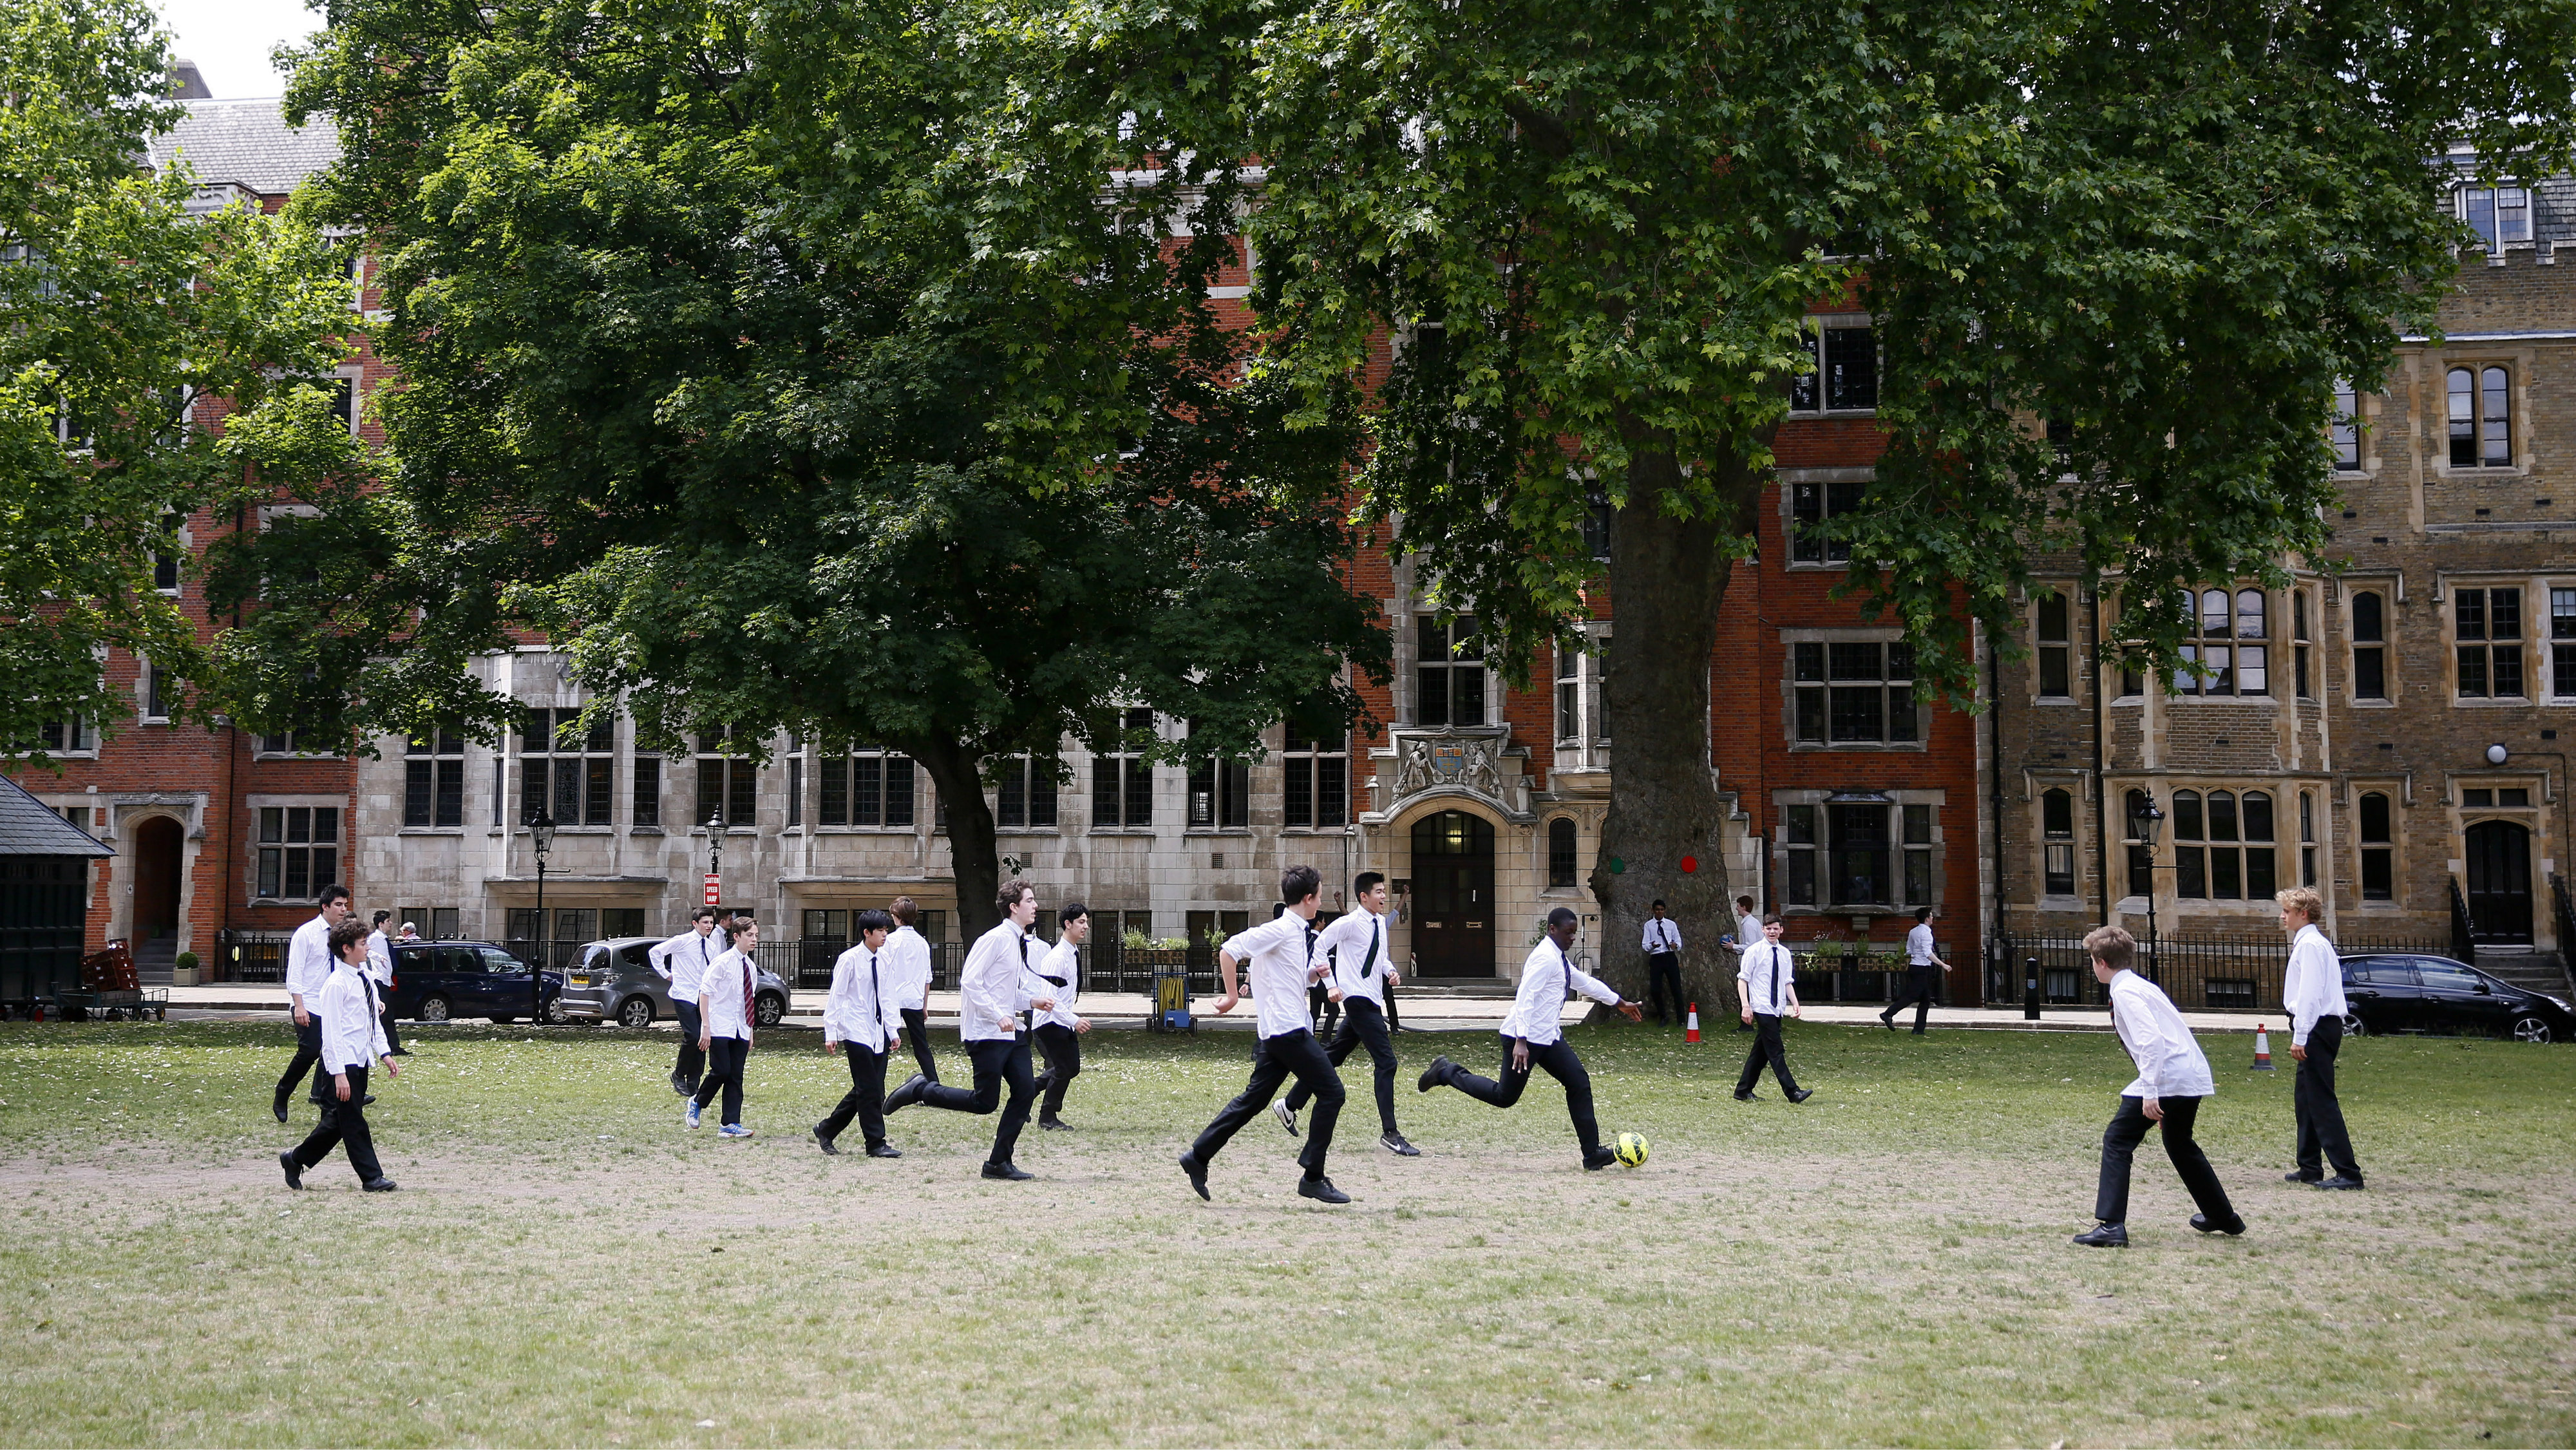 School children play soccer in Dean's Yard during lunch time on a summer day in central London